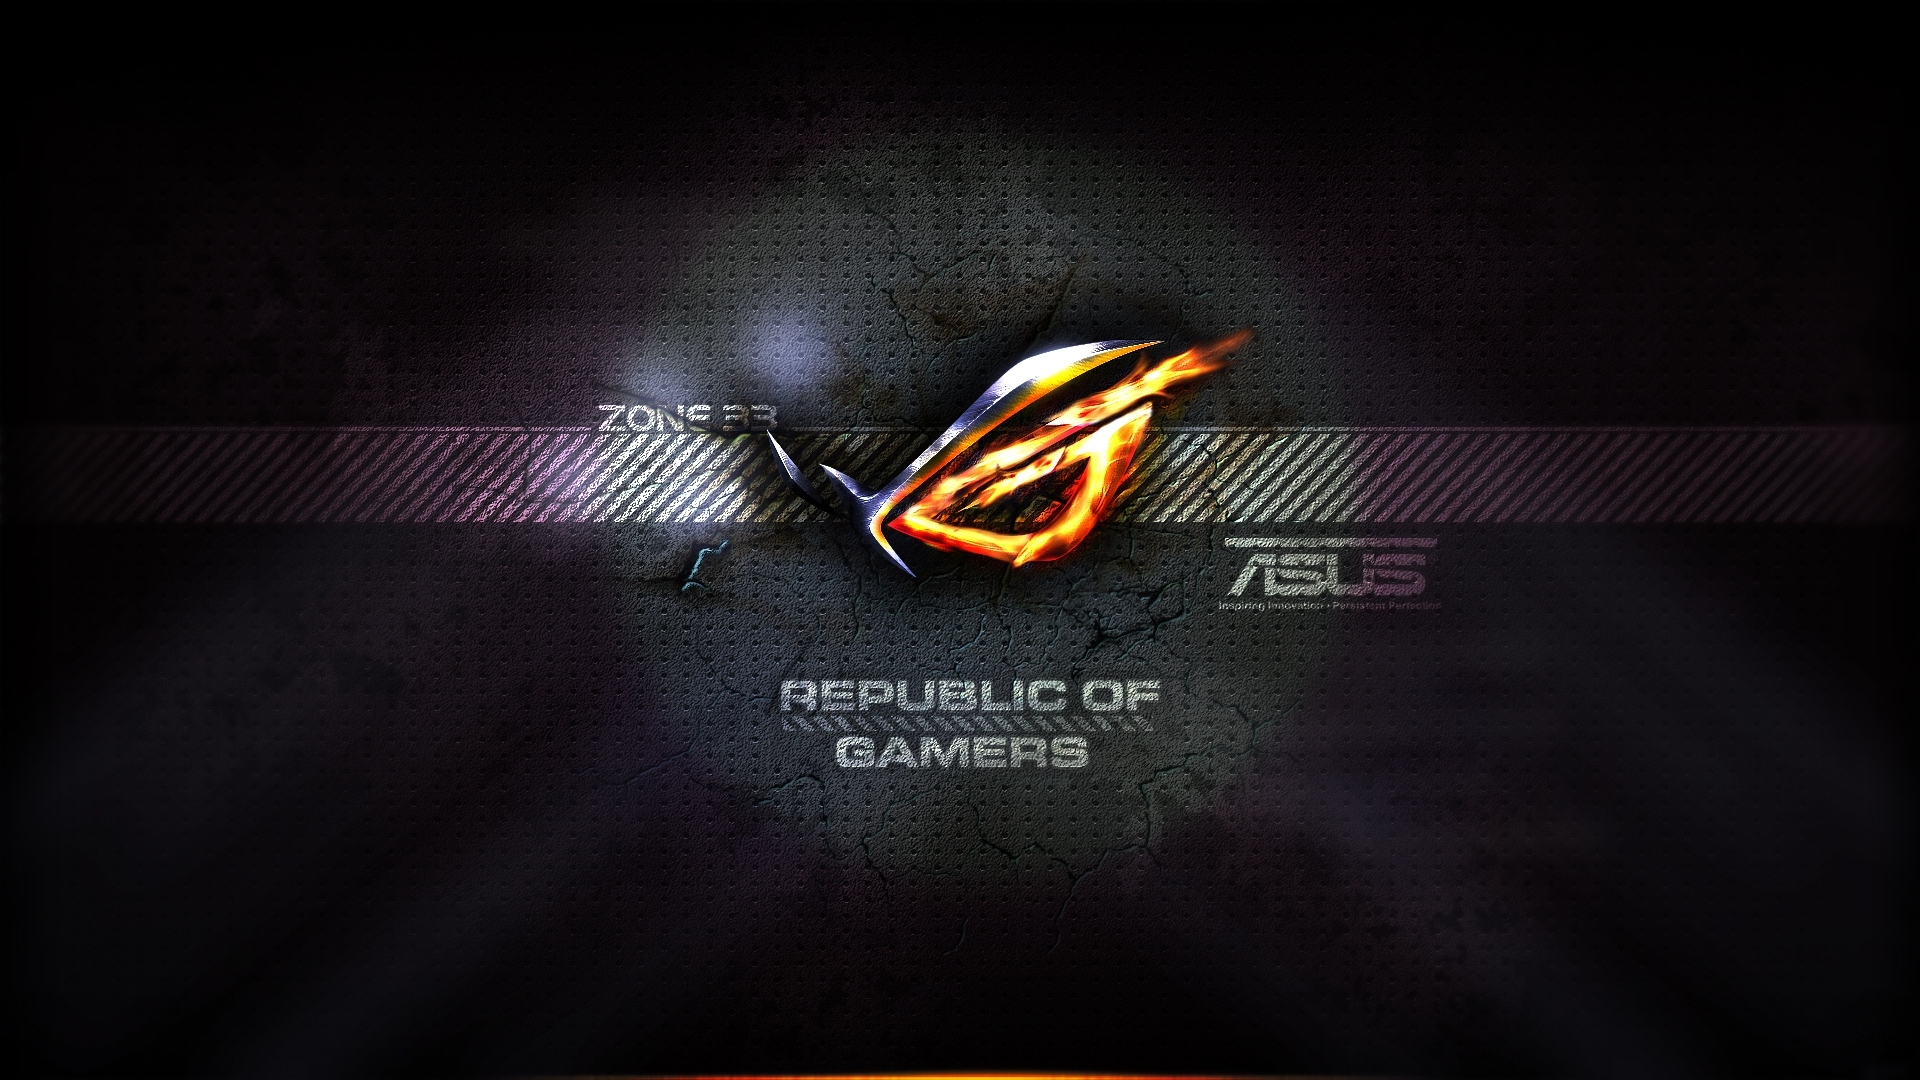 republic of gamers background wallpapers 08495 - baltana